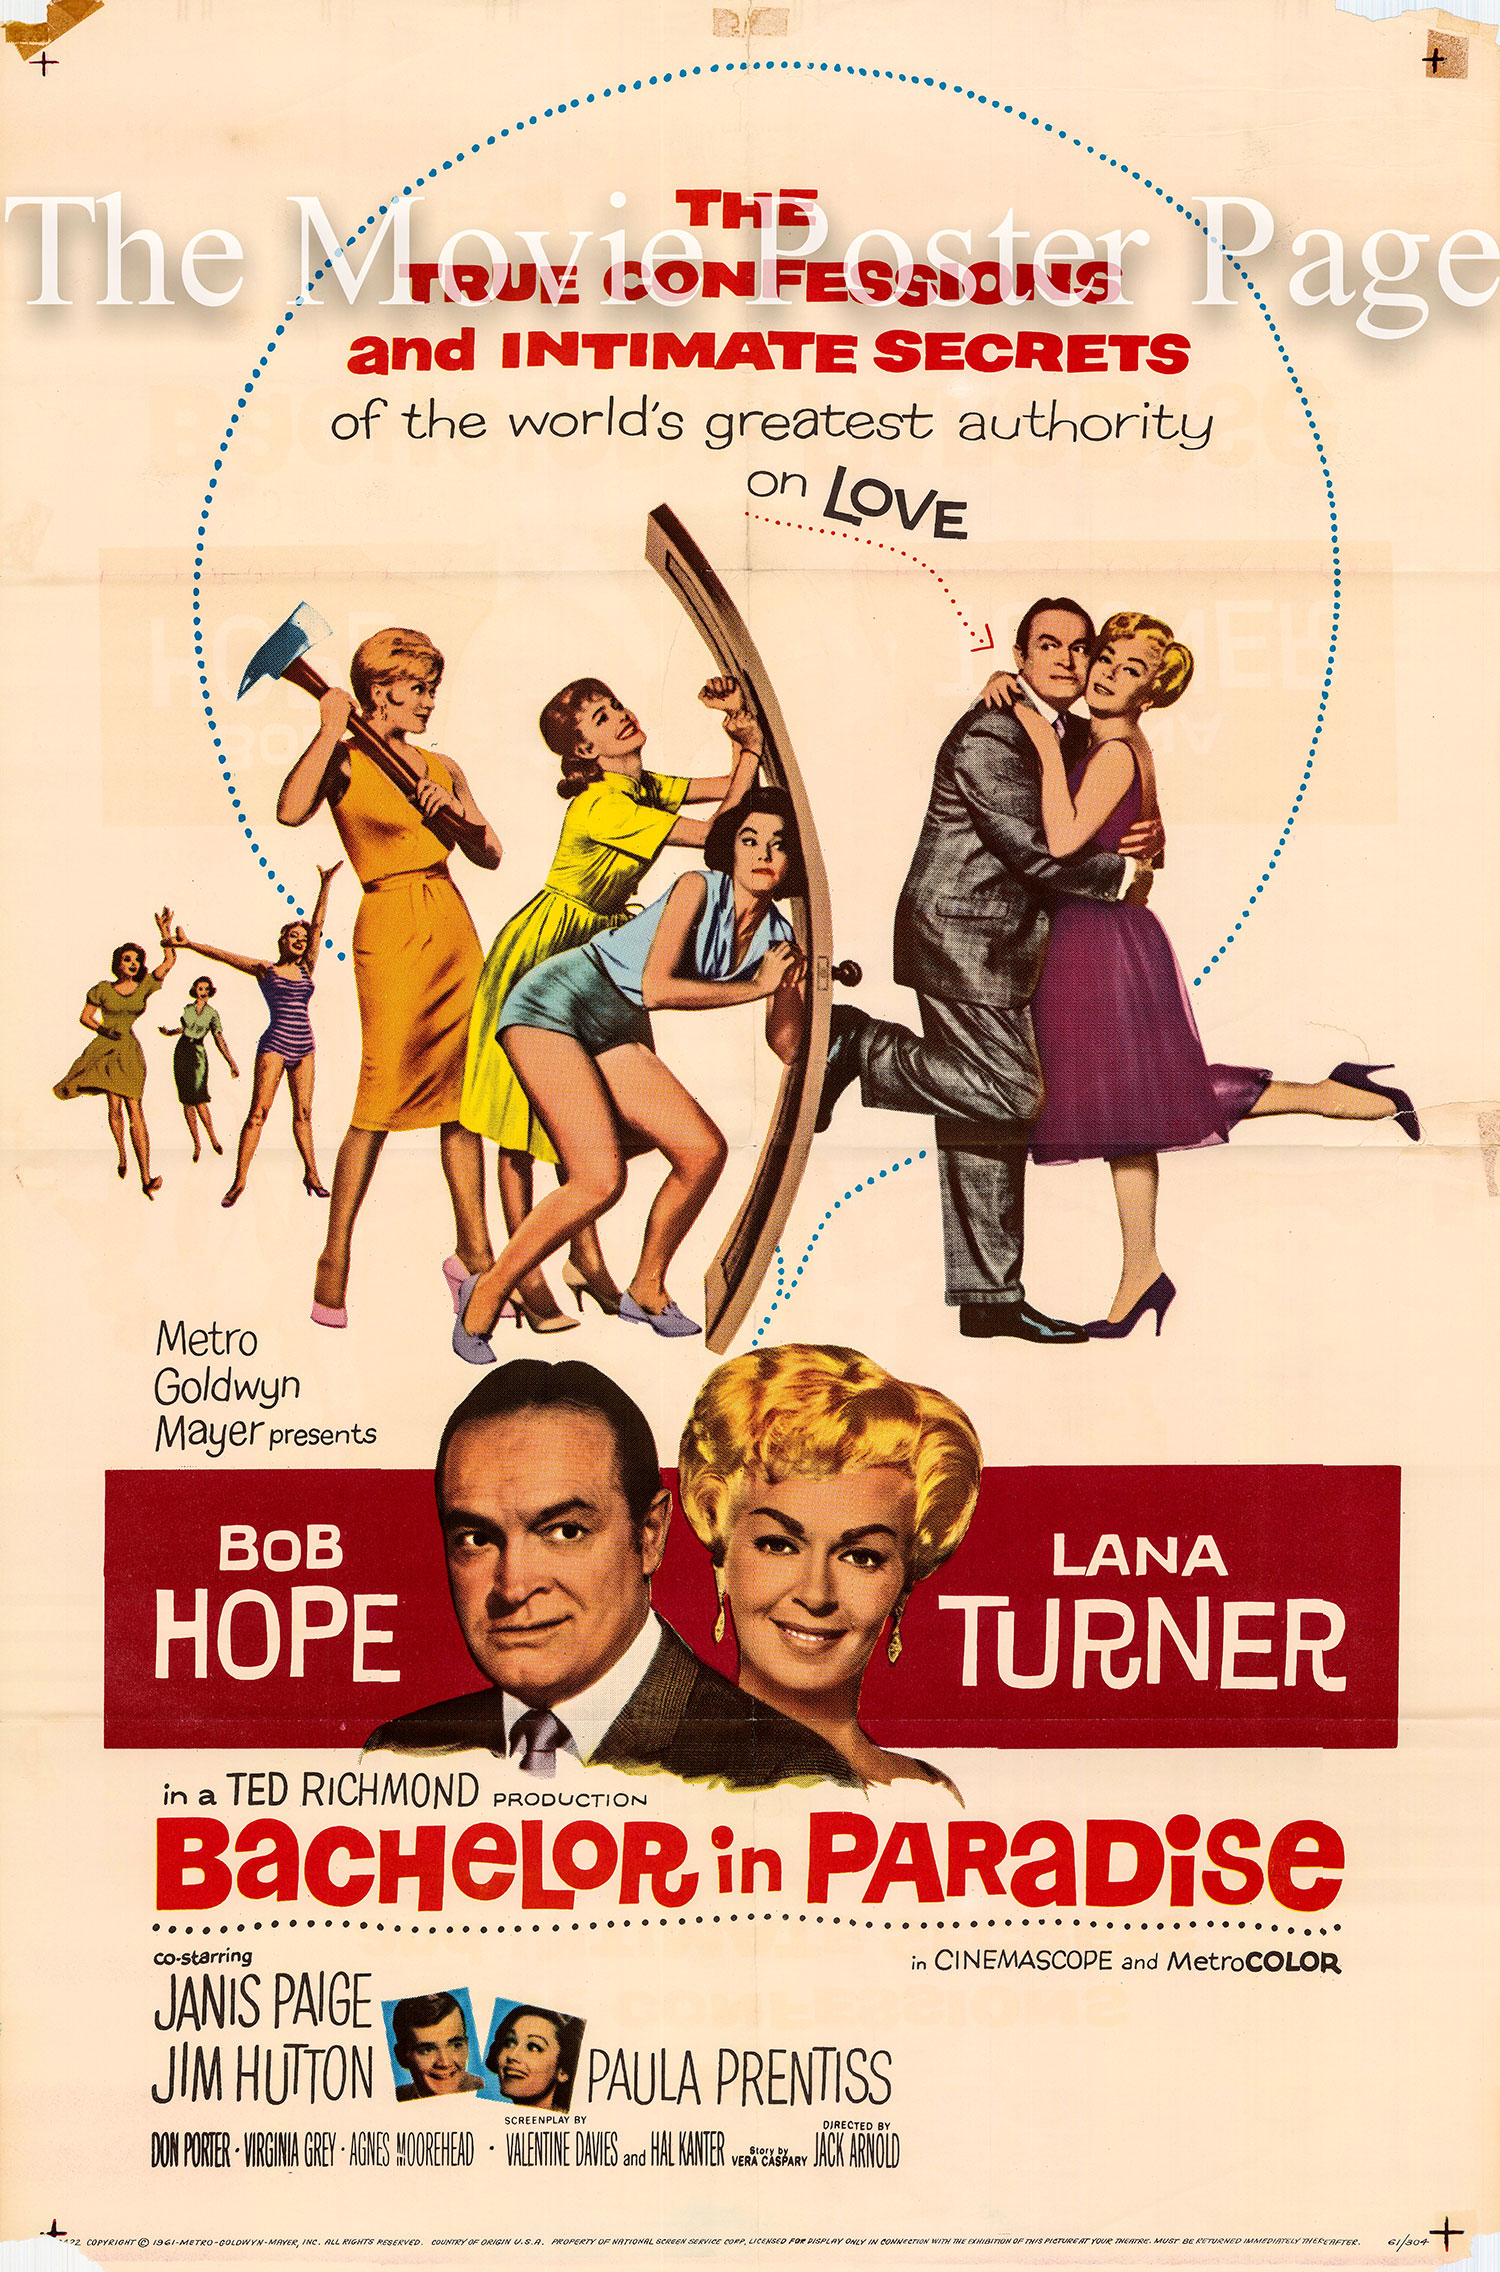 Pictured is a US one-sheet poster for the 1961 Jack Arnold film Bachelor in Paradise starring Bob Hope.